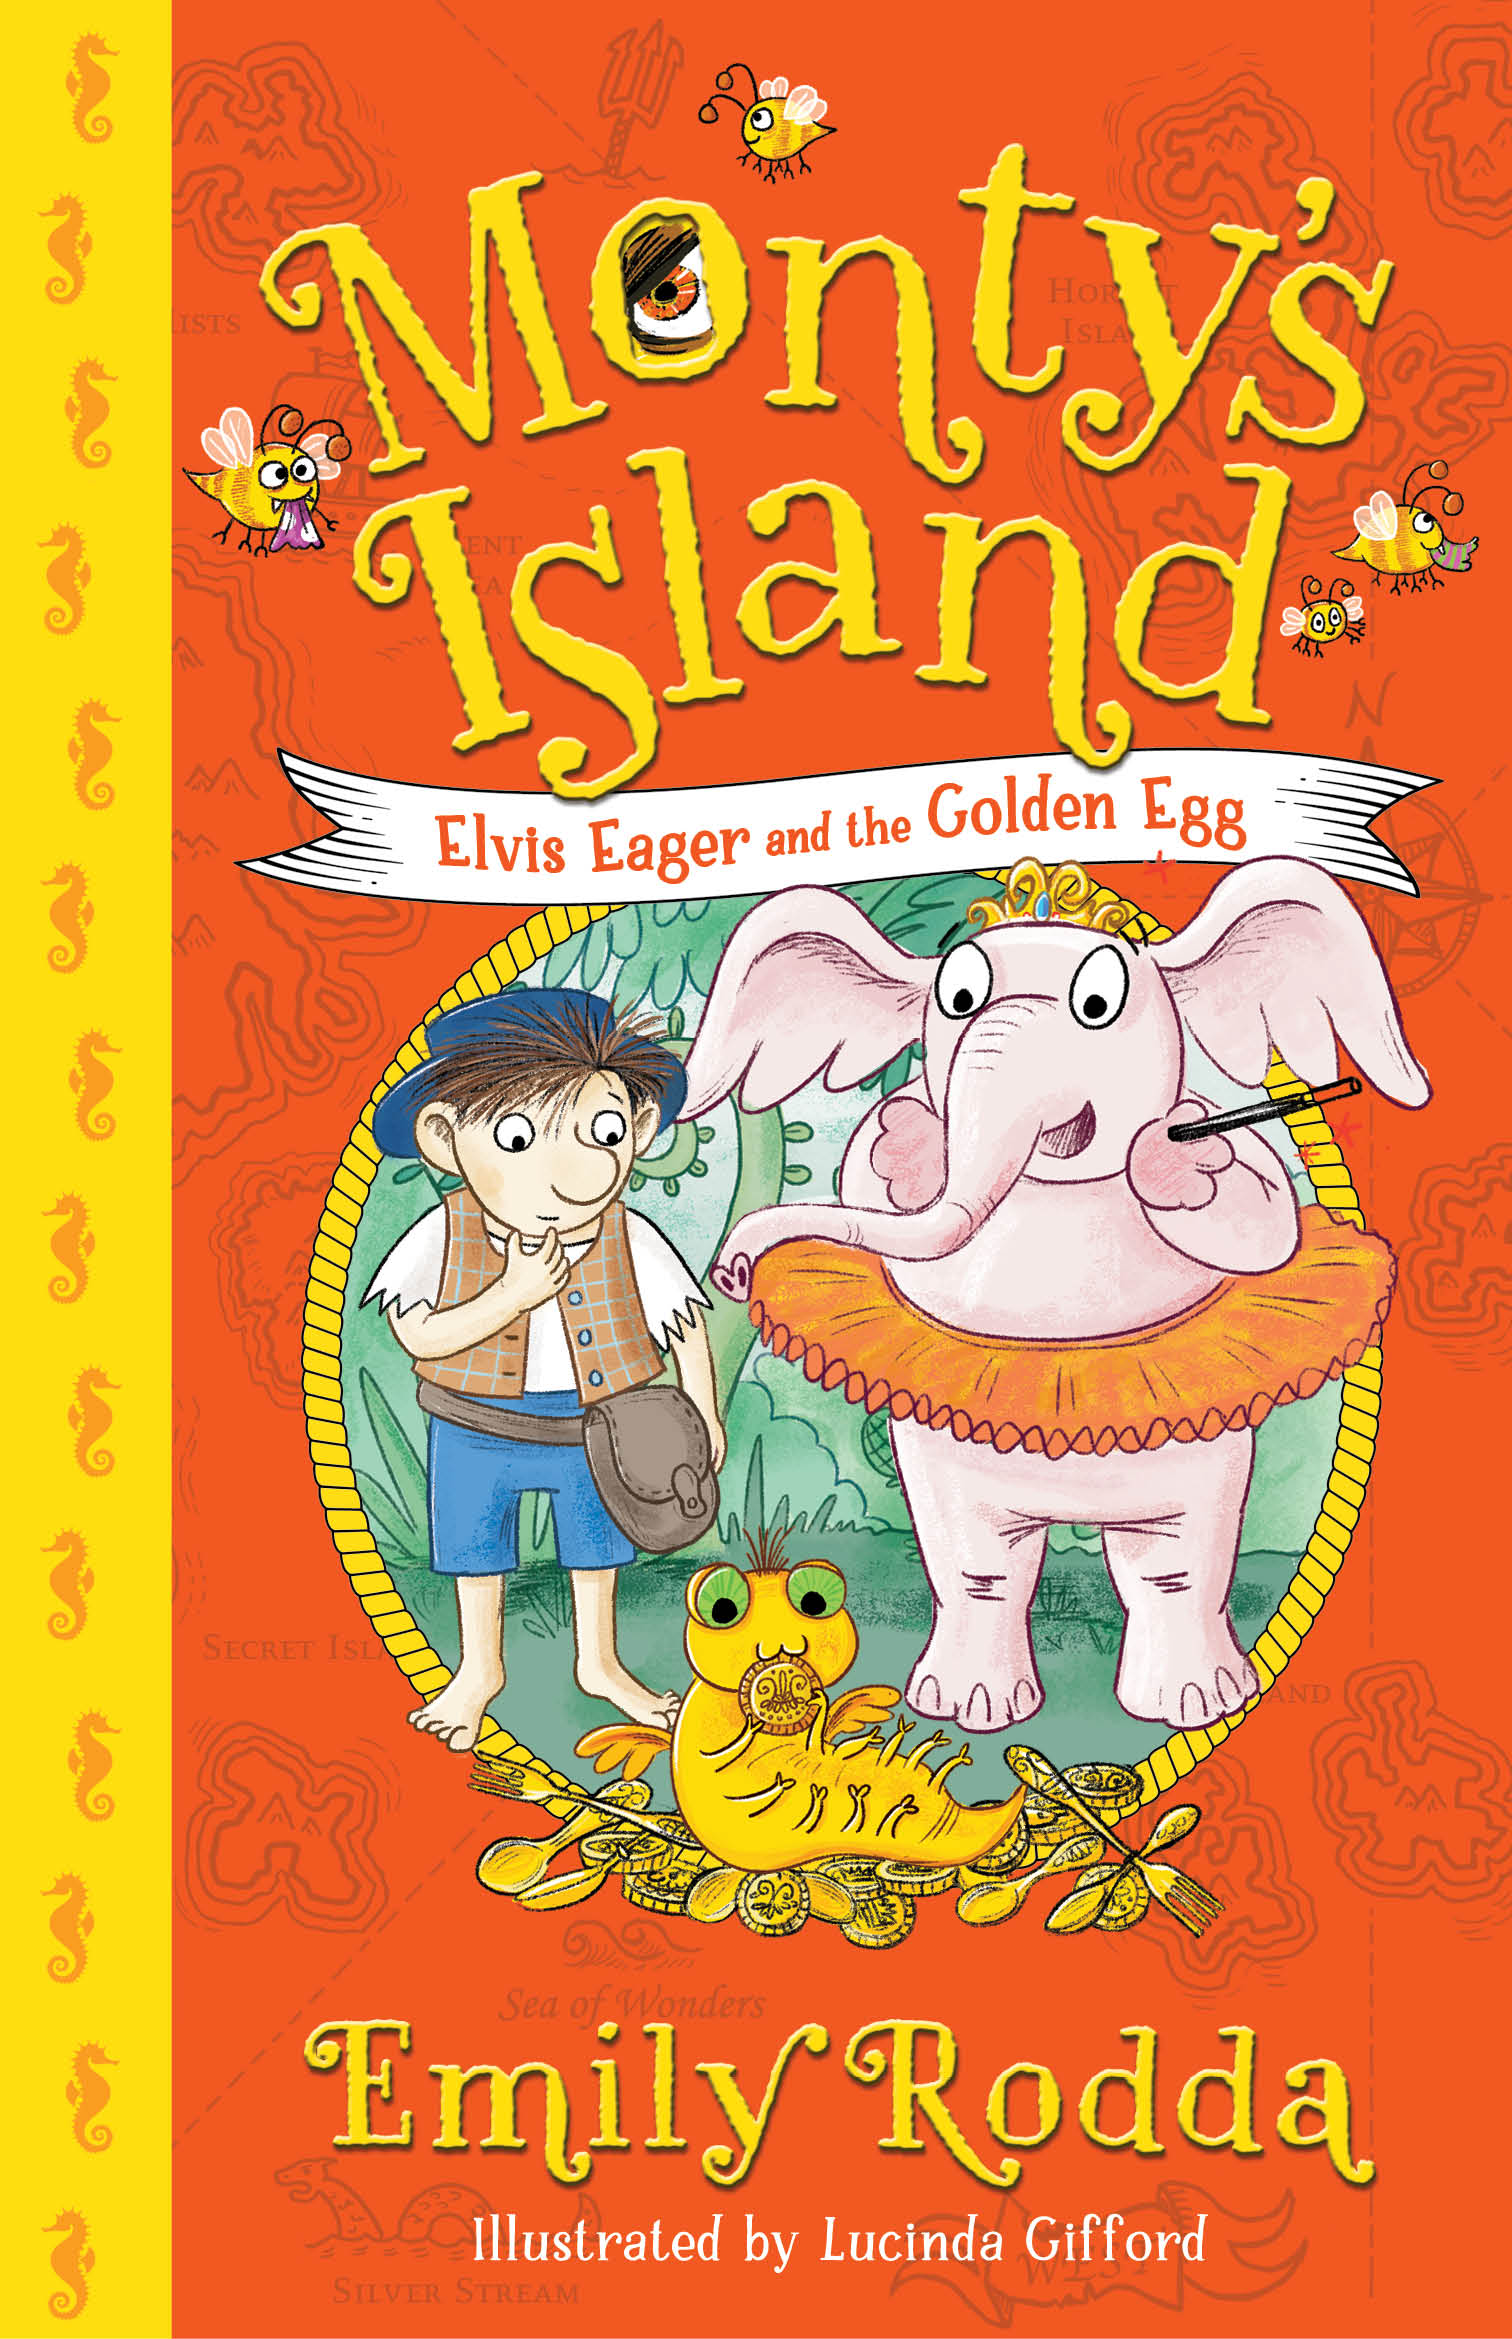 Elvis Eager and the Golden Egg: Monty's Island 3